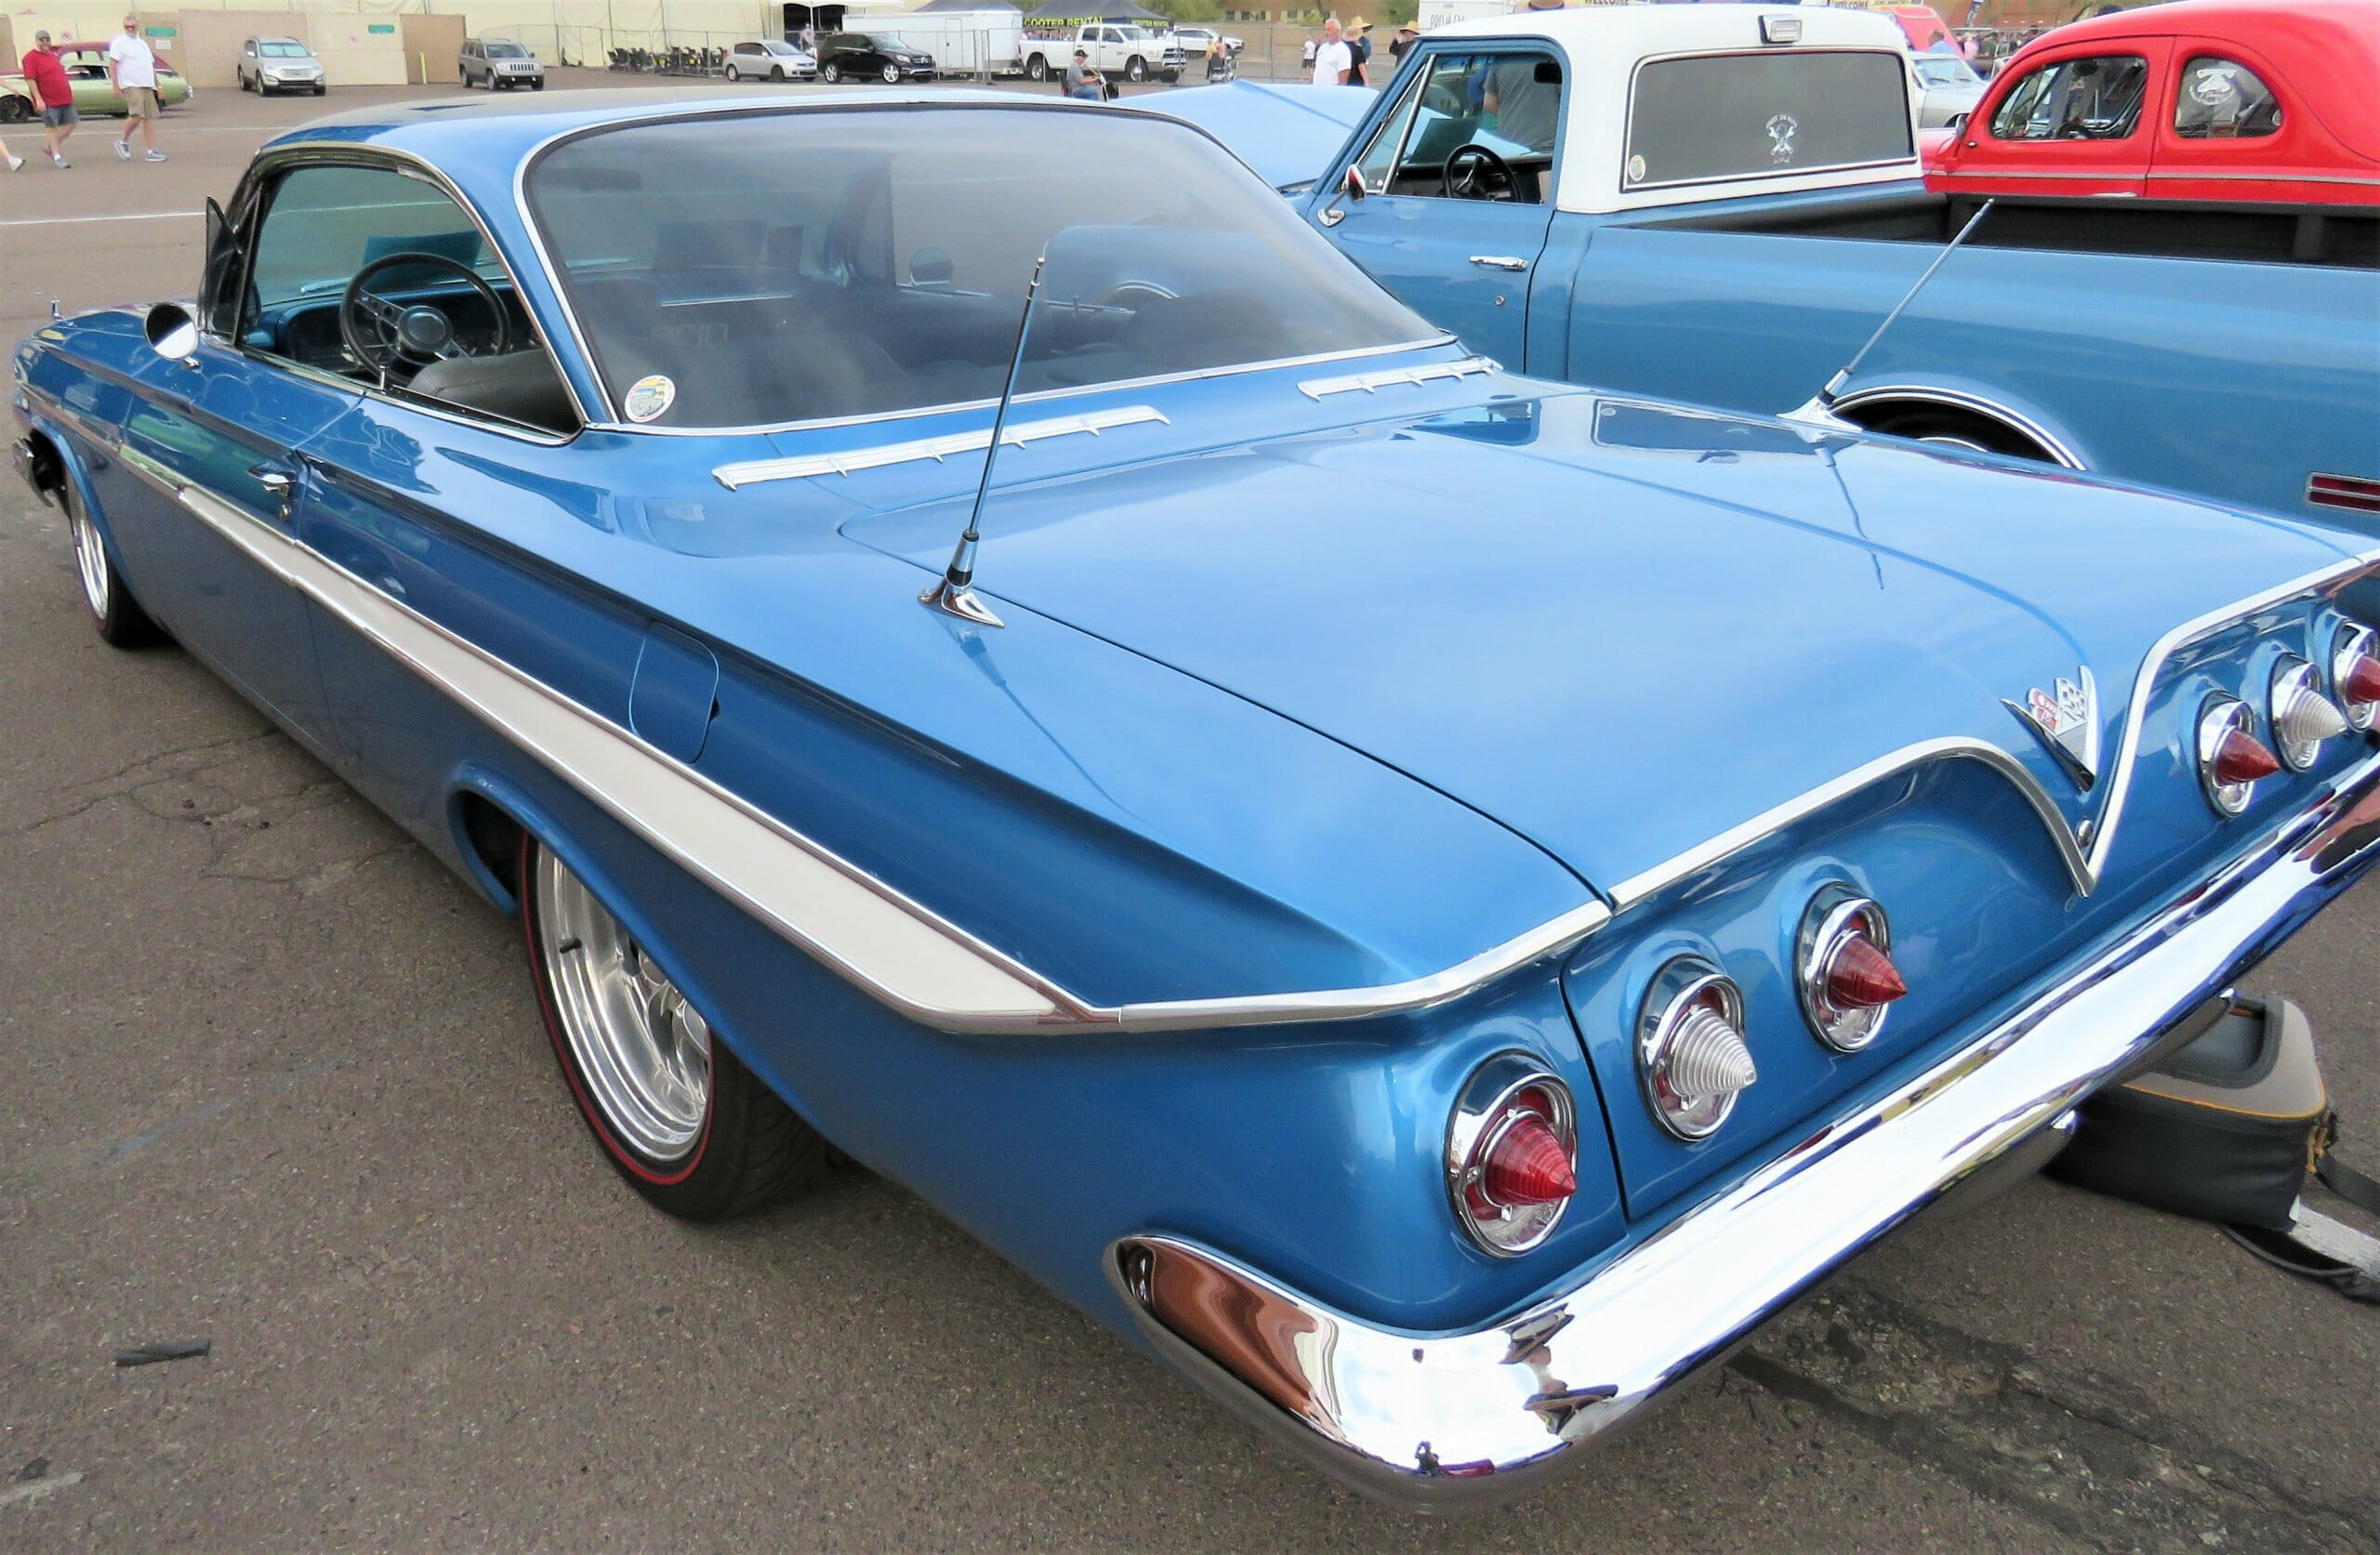 goodguys, All 18 Goodguys shows in one season, and 40,000 miles in a '61 Chevy Impala, ClassicCars.com Journal